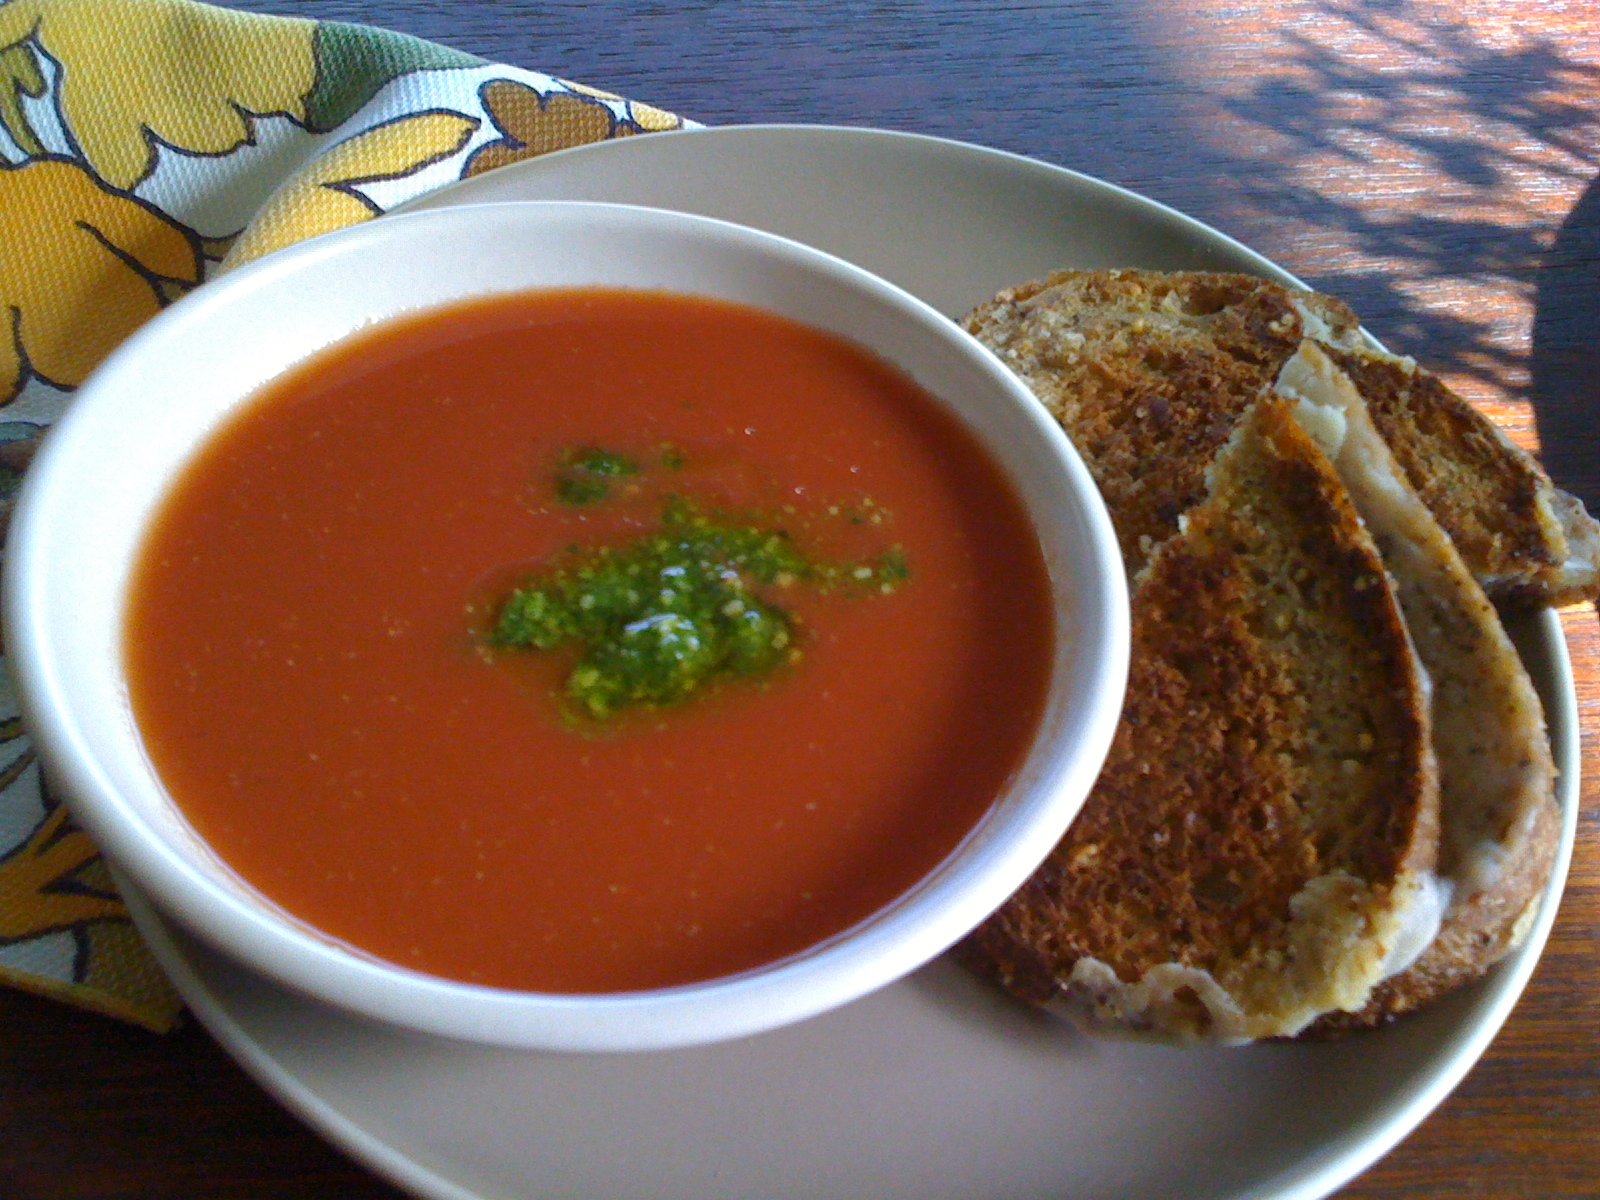 What is an easy tomato soup recipe?